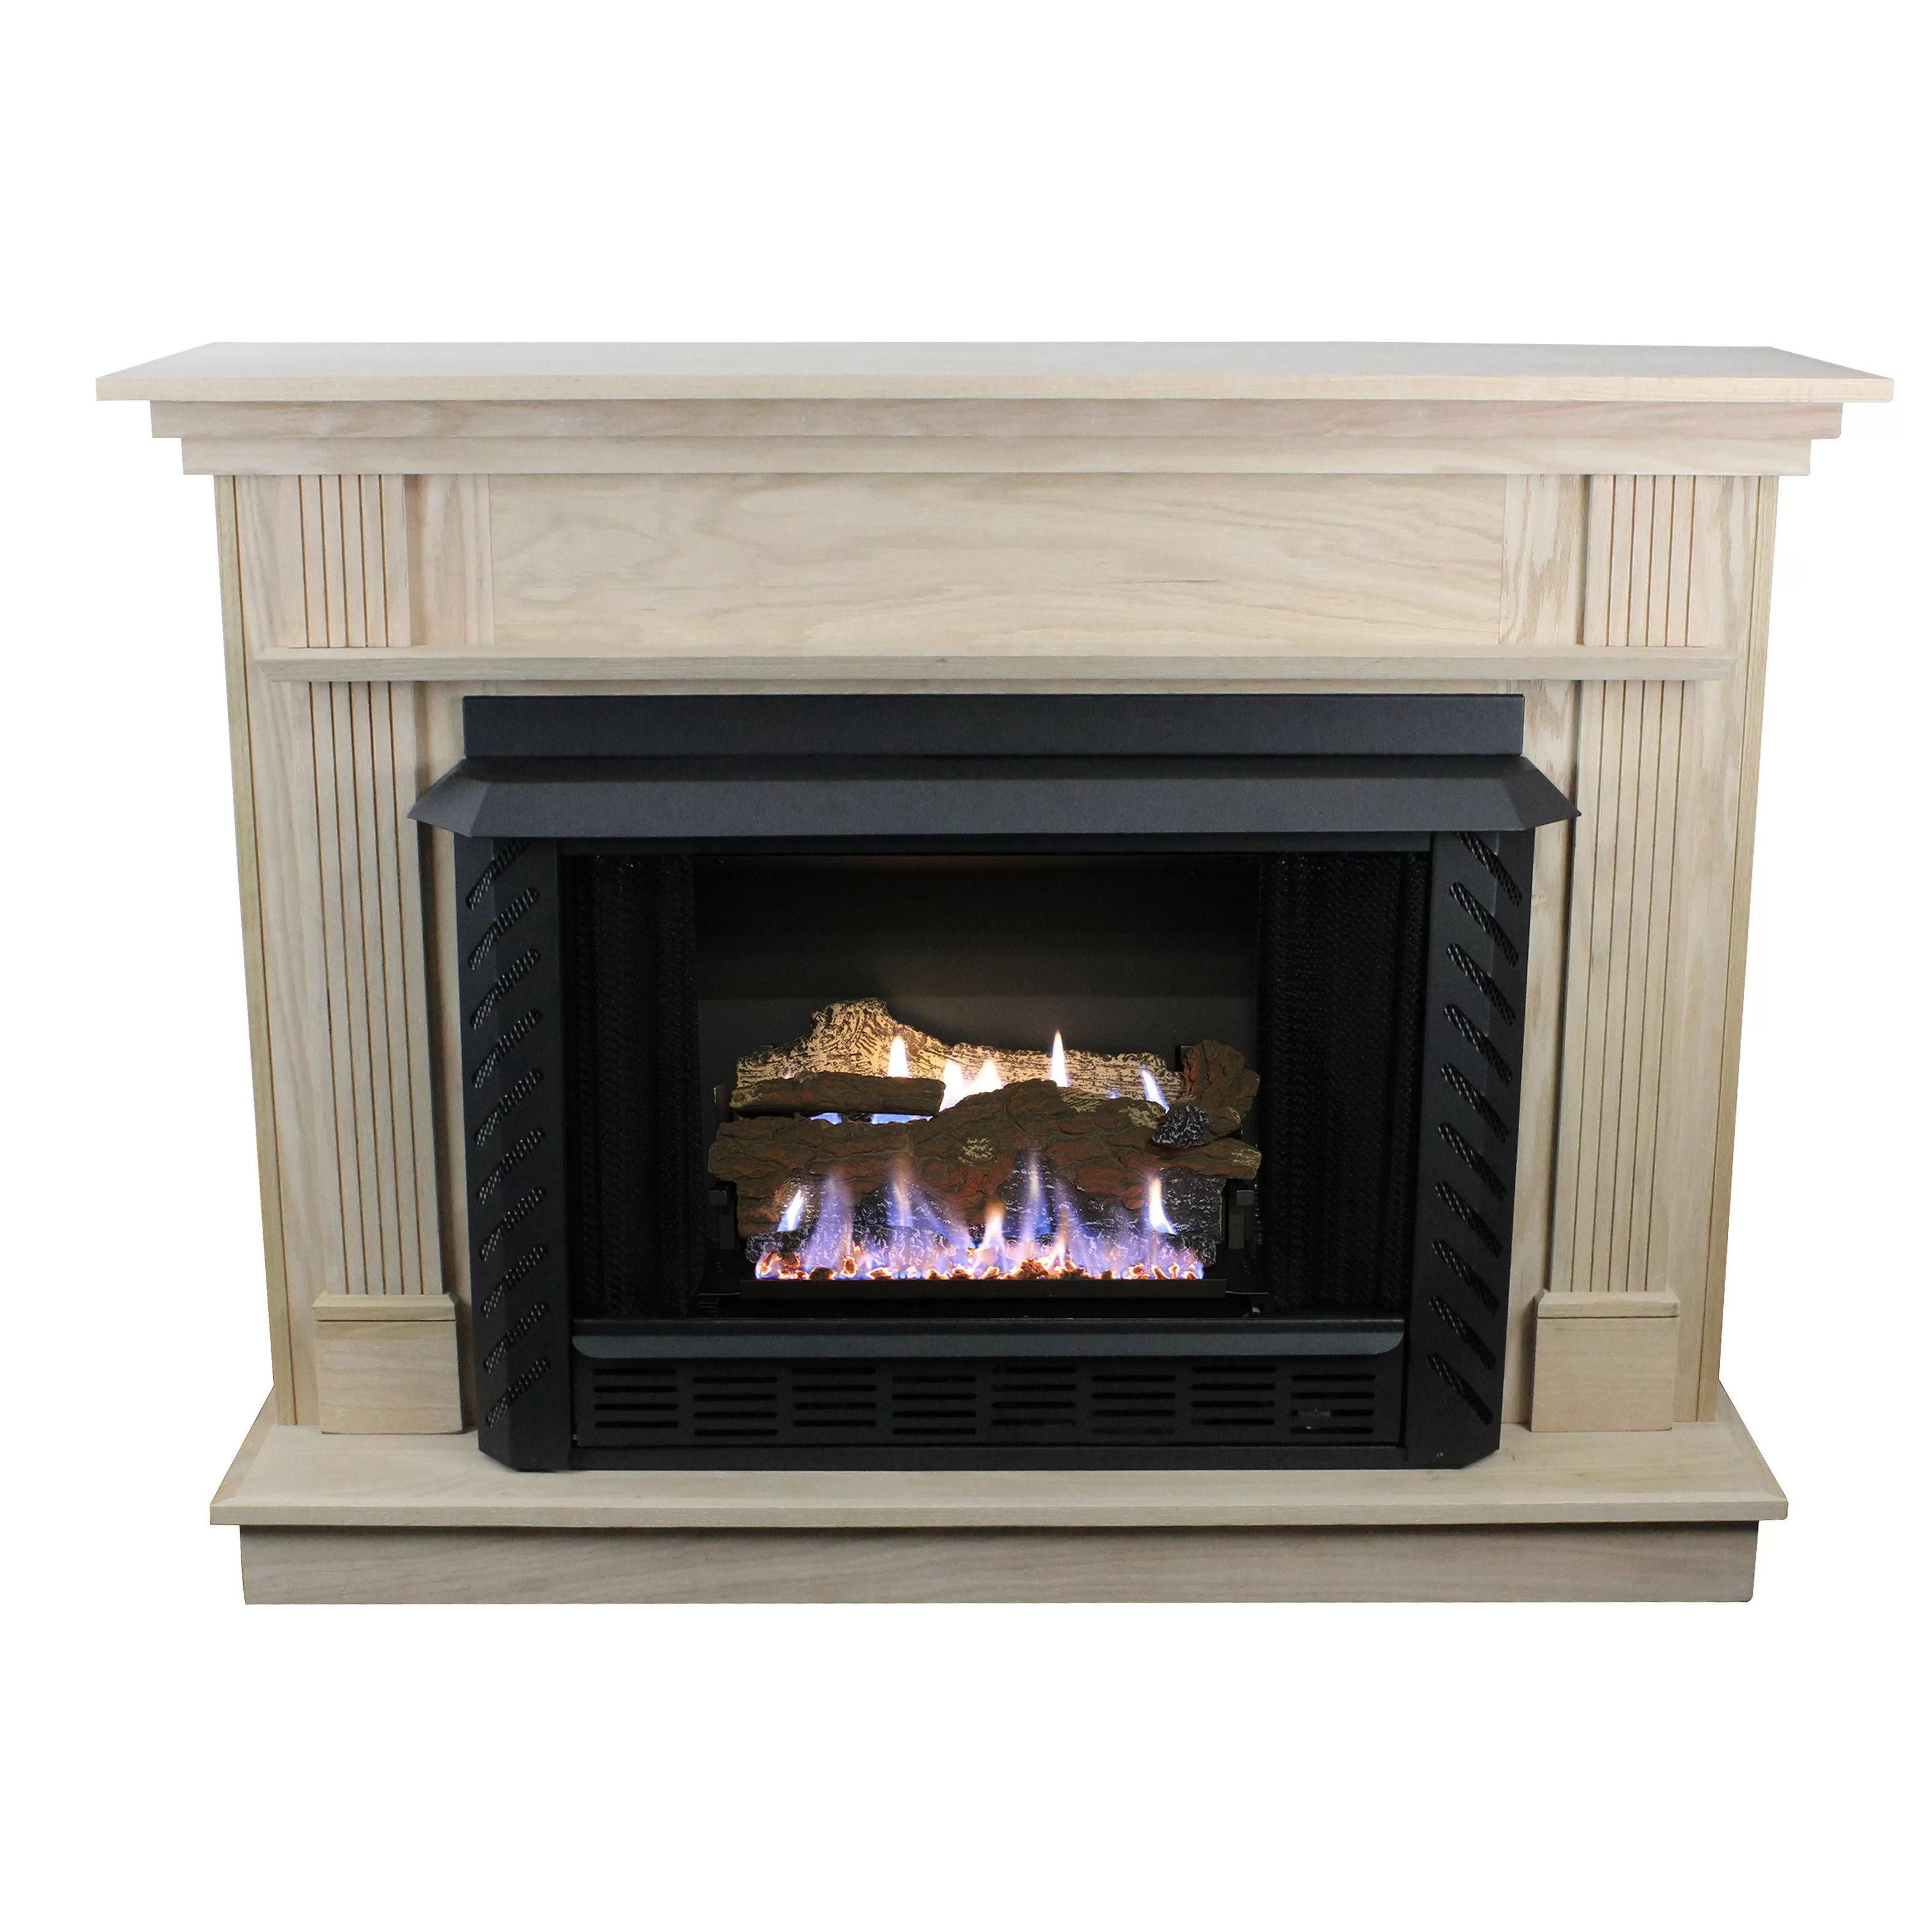 Fireplace Vent Ashley Hearth Vent Free Gas Fireplace Wayfair